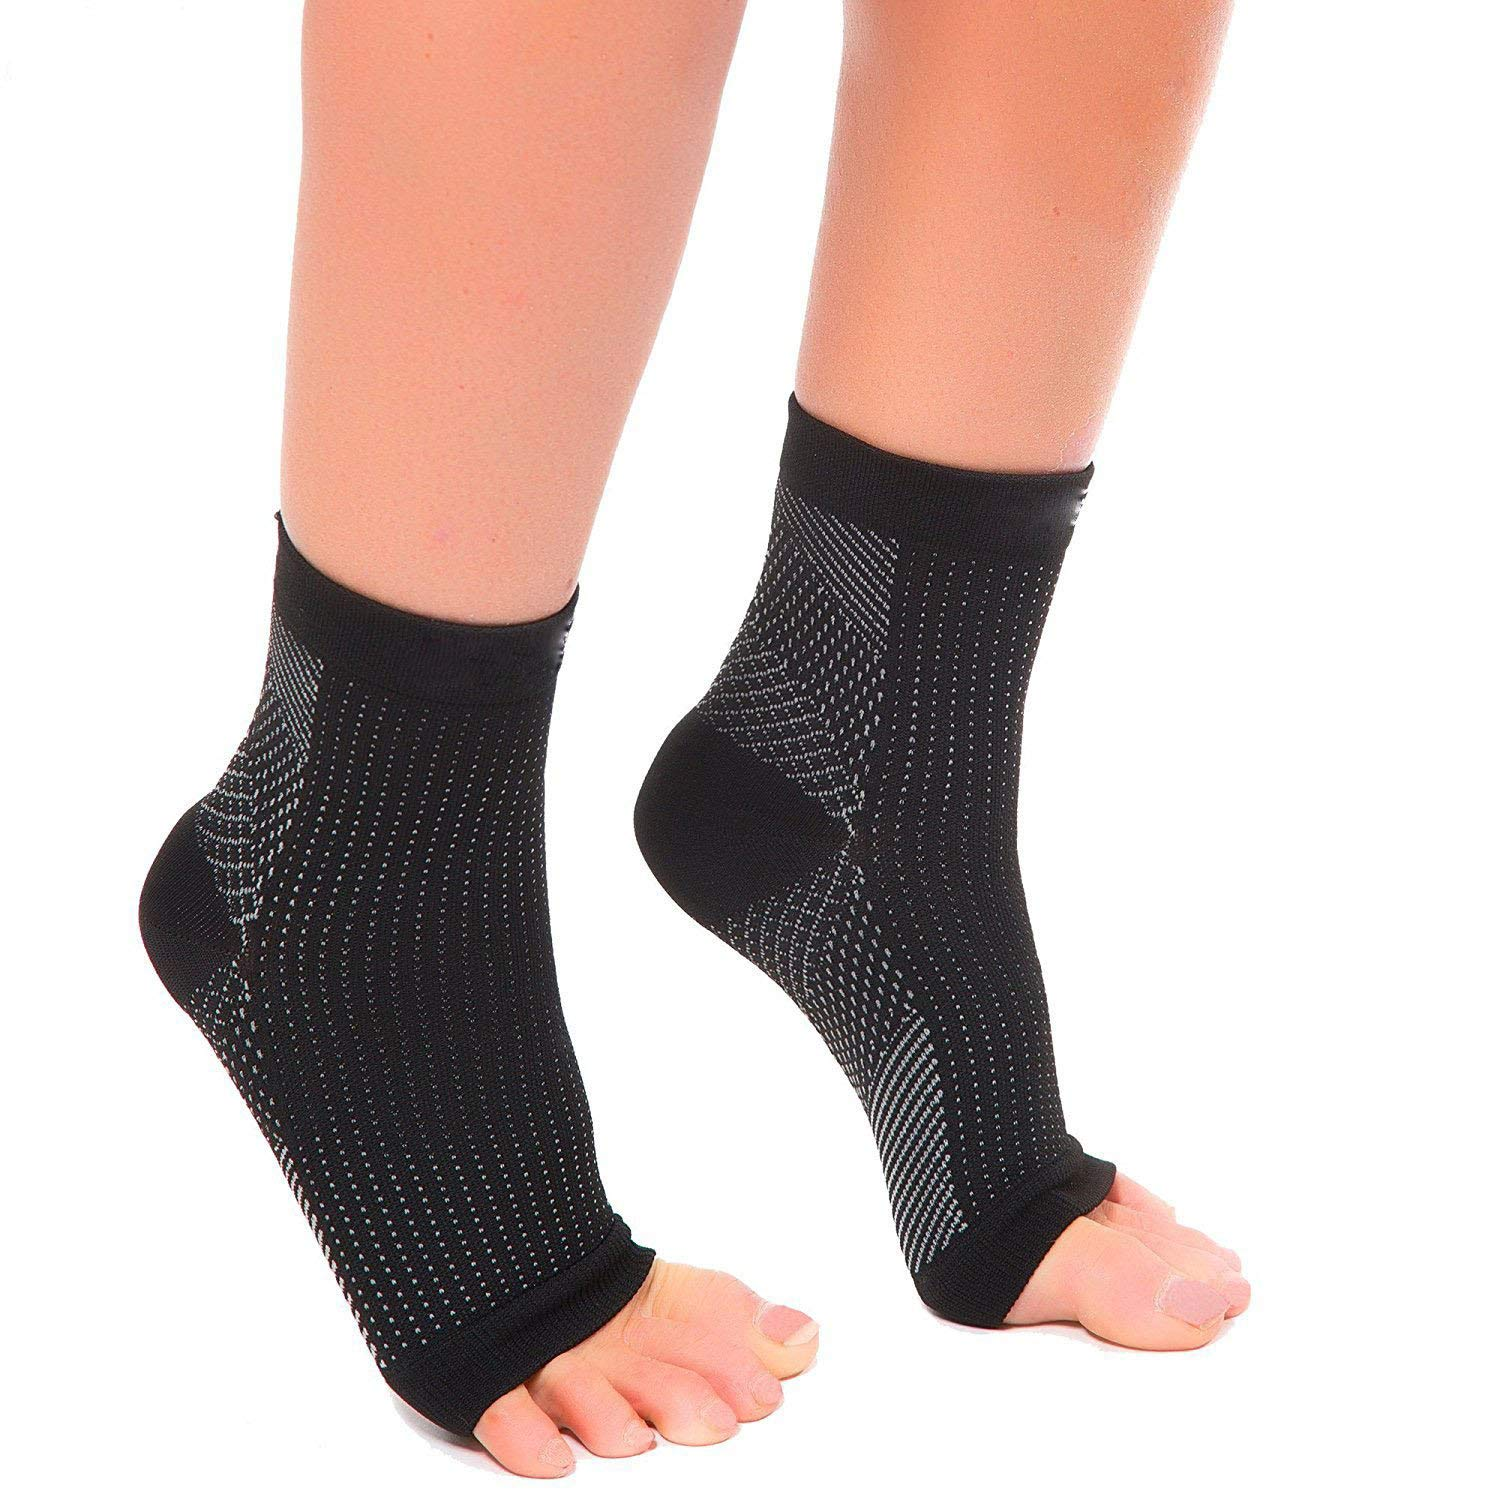 Kingkun 1 Pair Ankle Compression Socks Ankle Brace Sleeves Plantar Fasciitis Foot Socks with Arch for Injury Recovery, Joint Pain and More